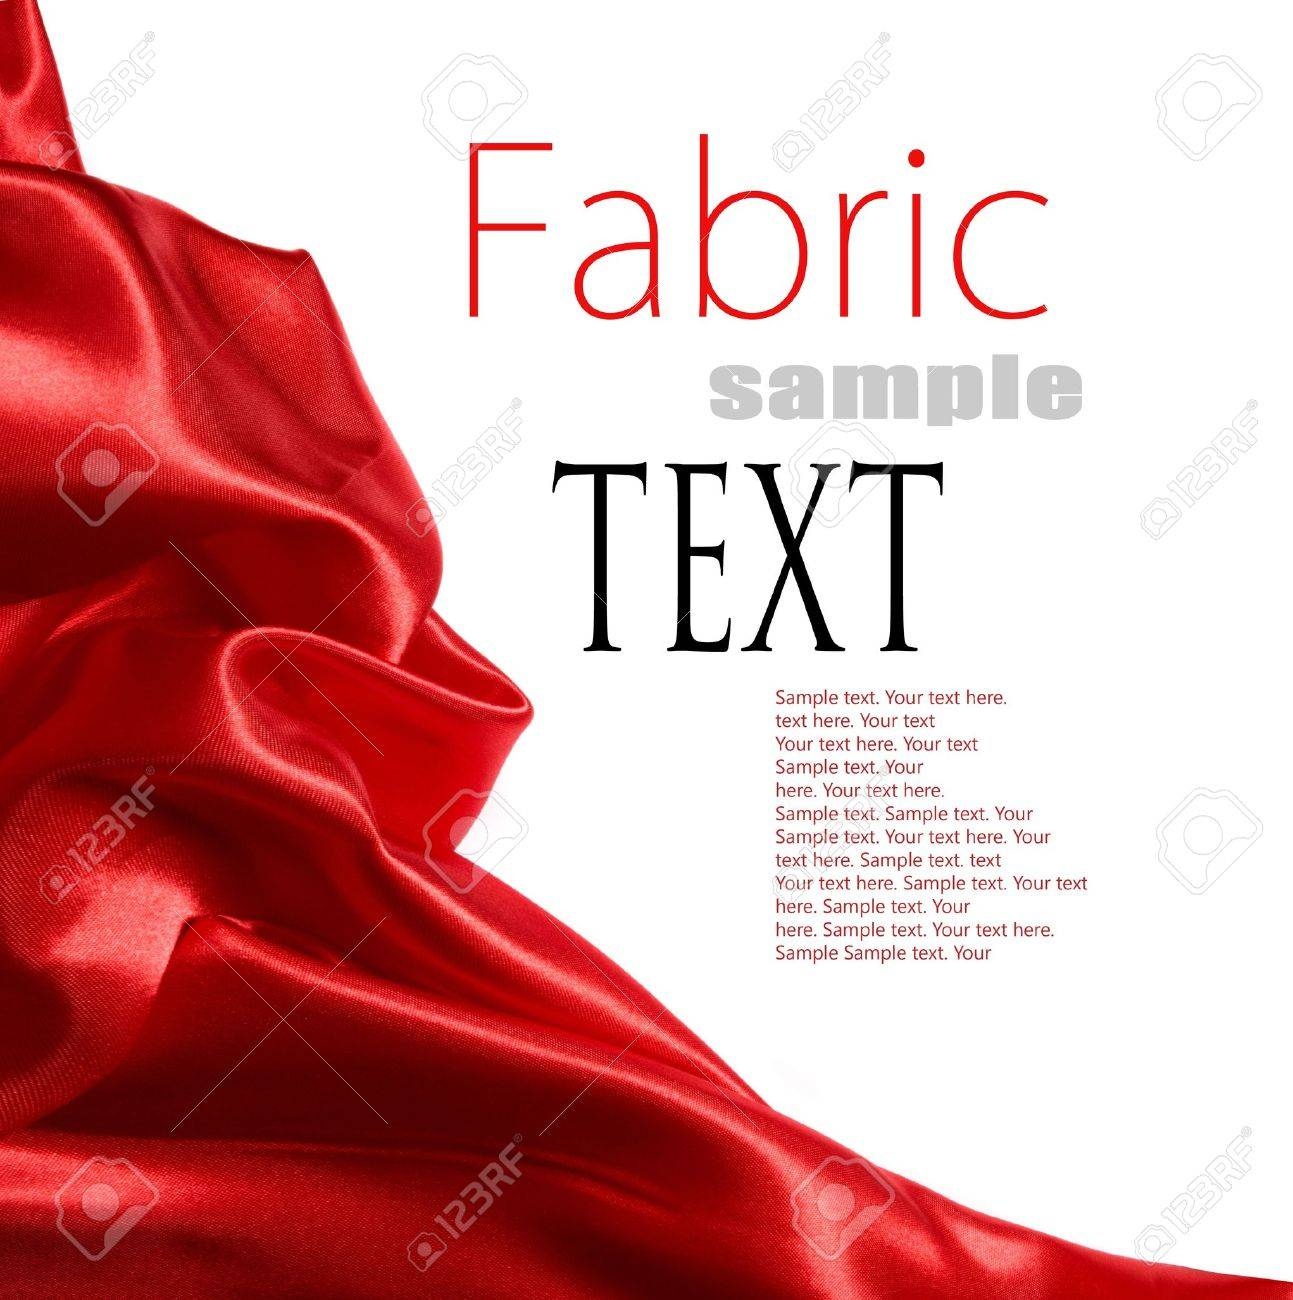 red satin fabric with place for your text - 11218816